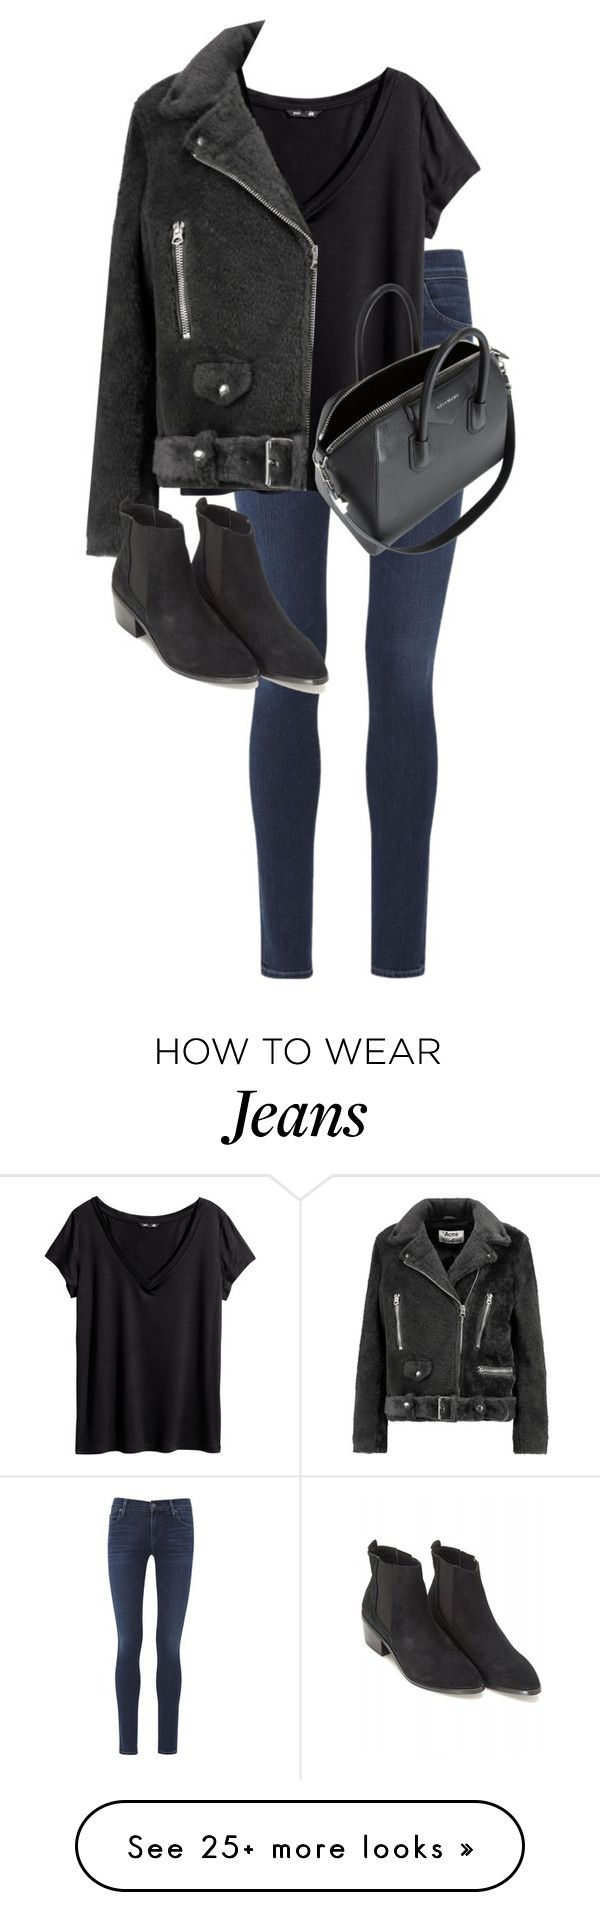 """""""Untitled #10197"""" by alexsrogers on Polyvore featuring Citizens of Humanity, H&M, Acne Studios, Sol Sana and Givenchy"""